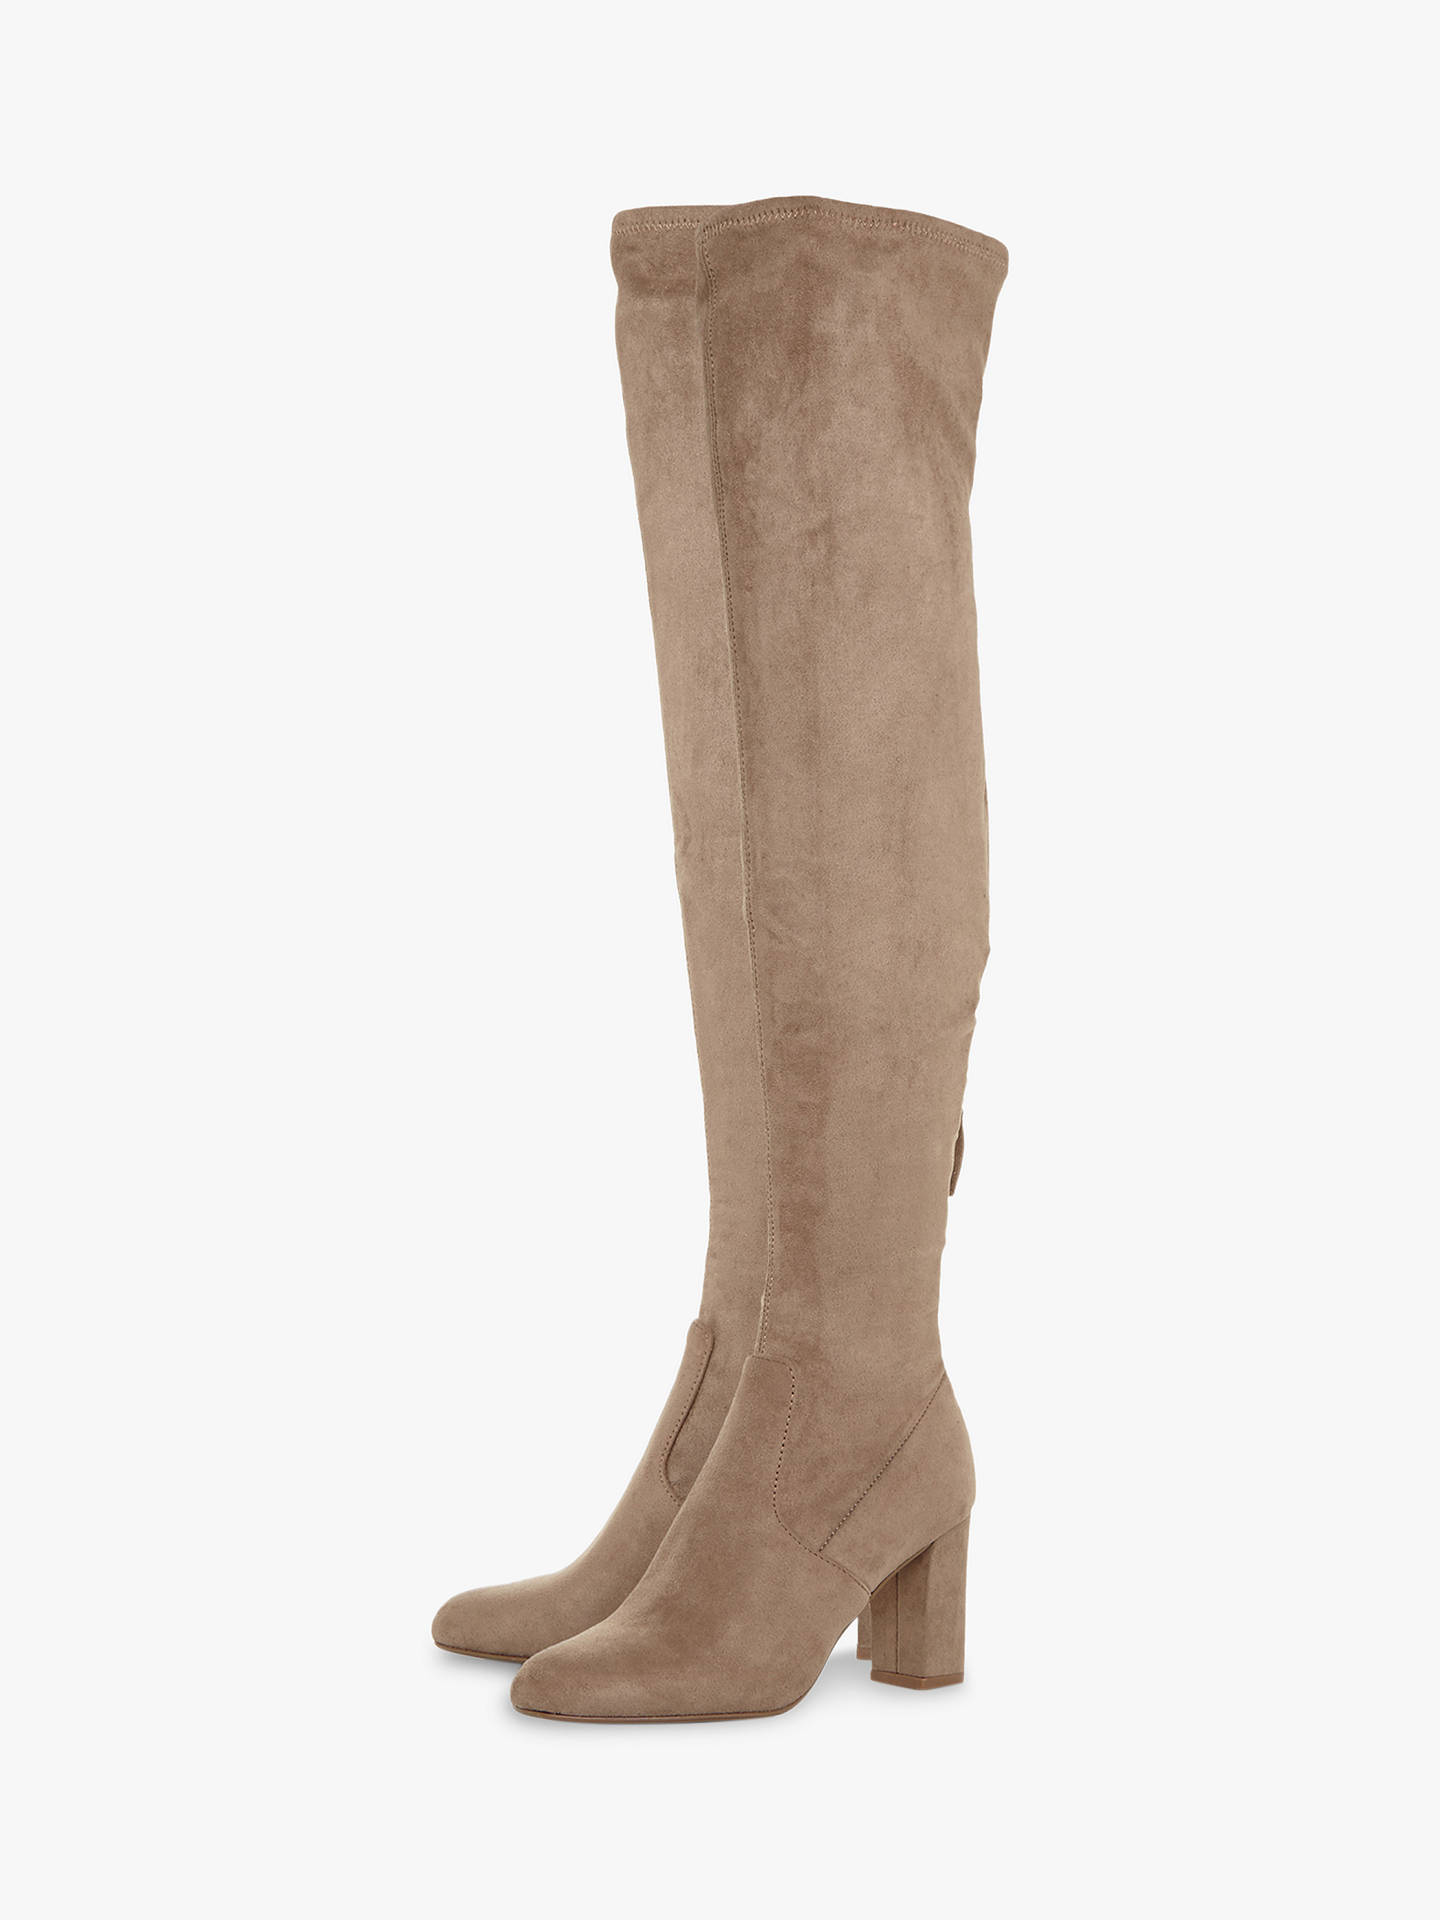 BuySteve Madden Anton High Block Heel Over The Knee Boots, Grey, 5 Online at johnlewis.com